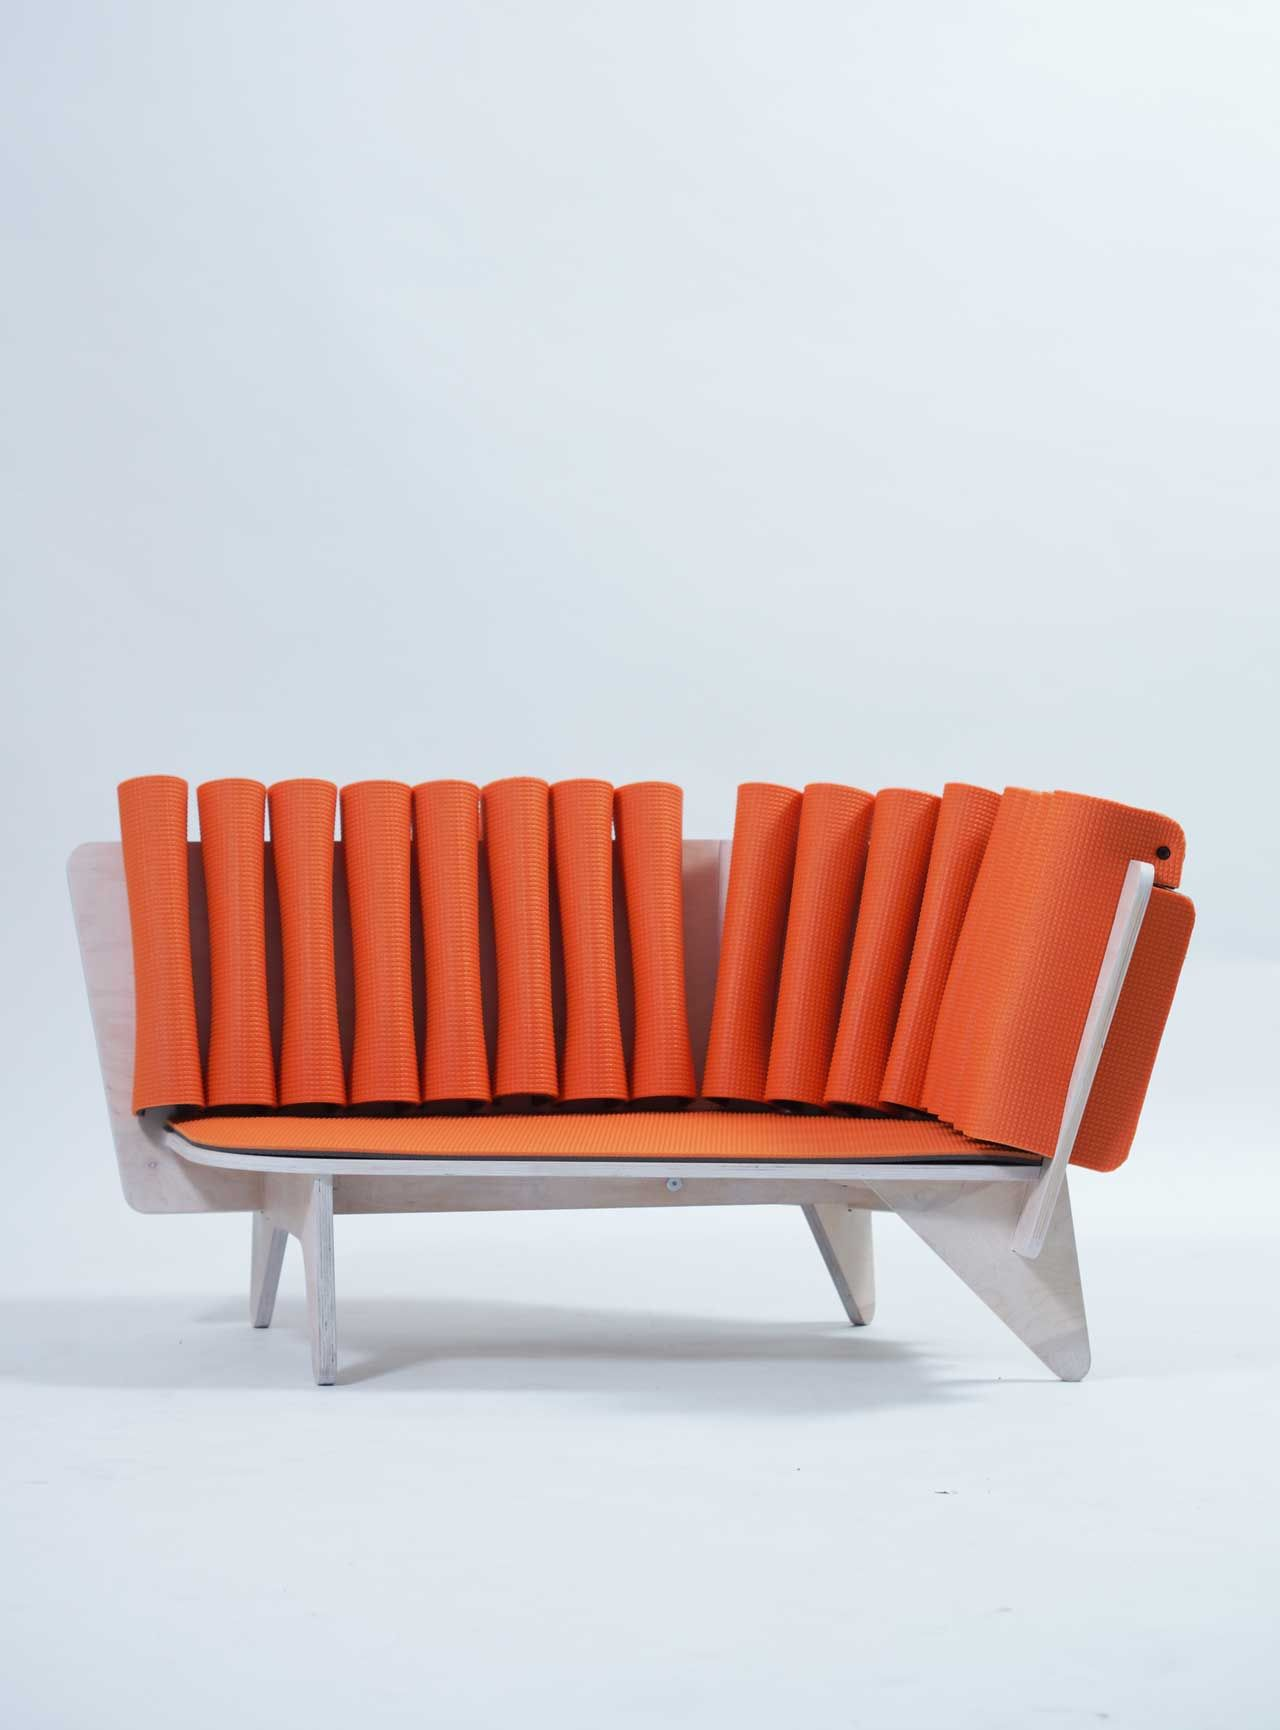 A Child\'s Chaise Made From Plywood and Foam by Márton Hegyesi ...